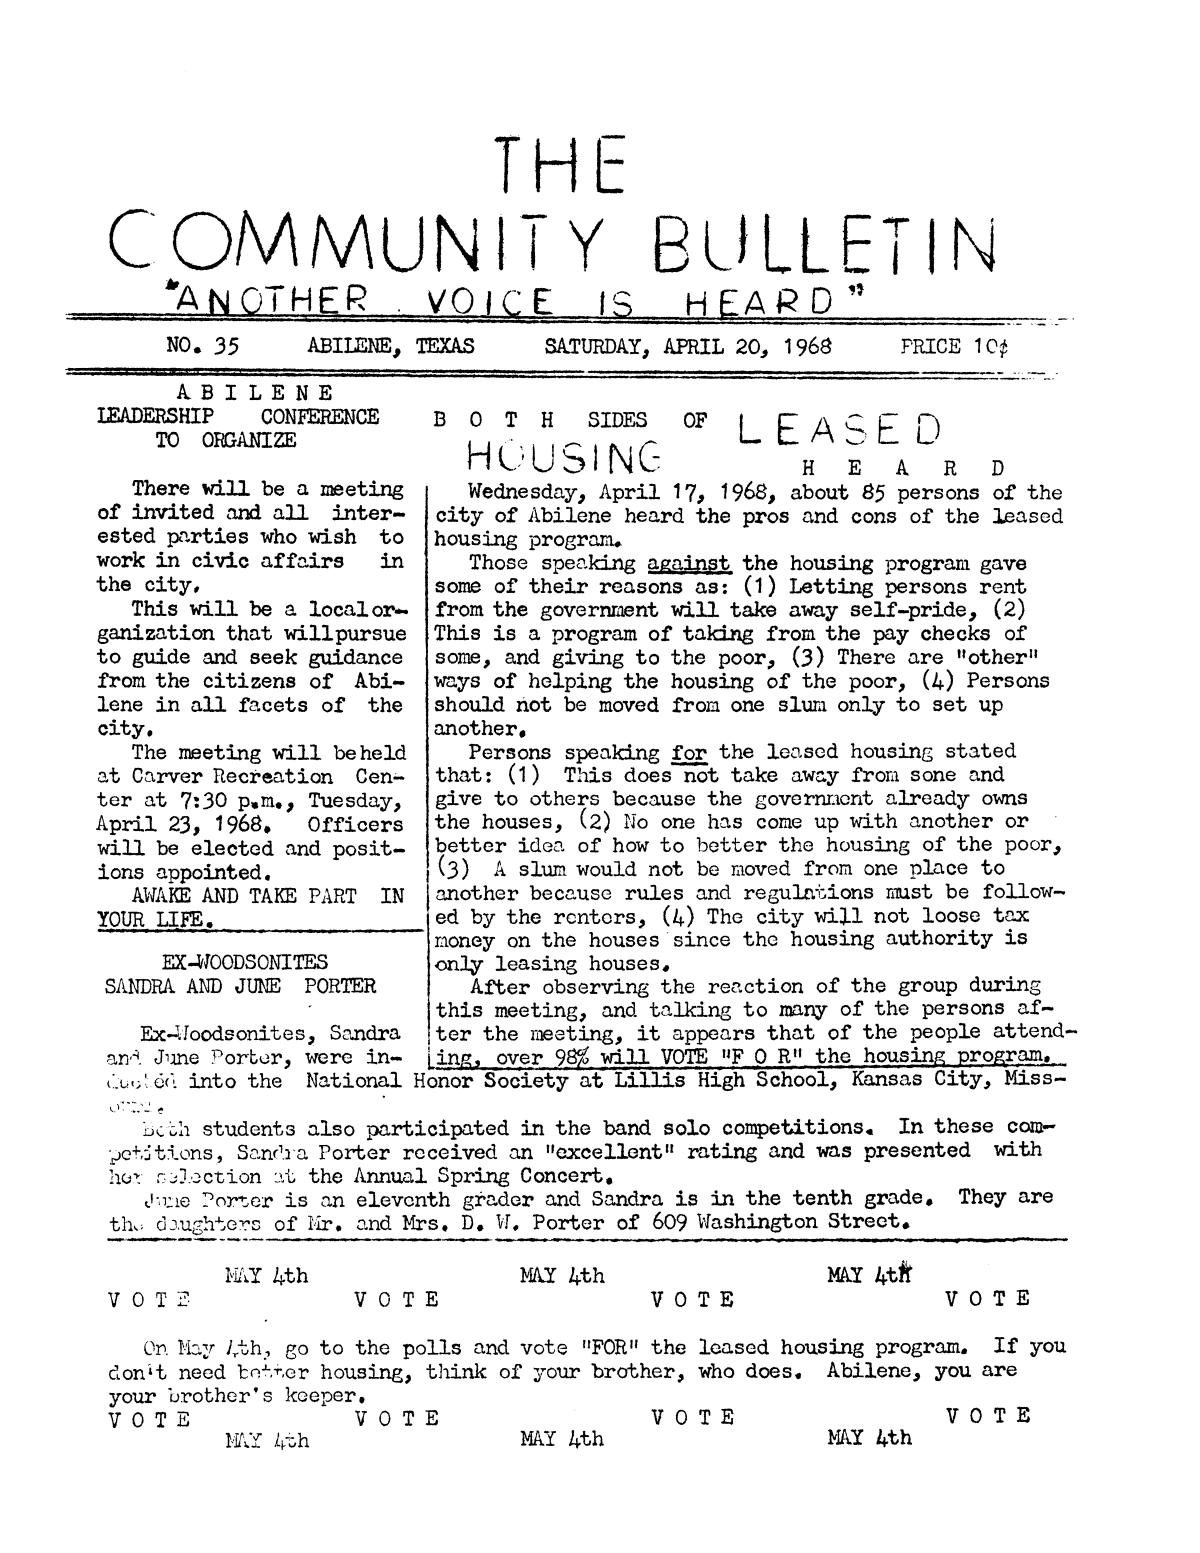 The Community Bulletin (Abilene, Texas), No. 35, Saturday, April 20, 1968                                                                                                      1